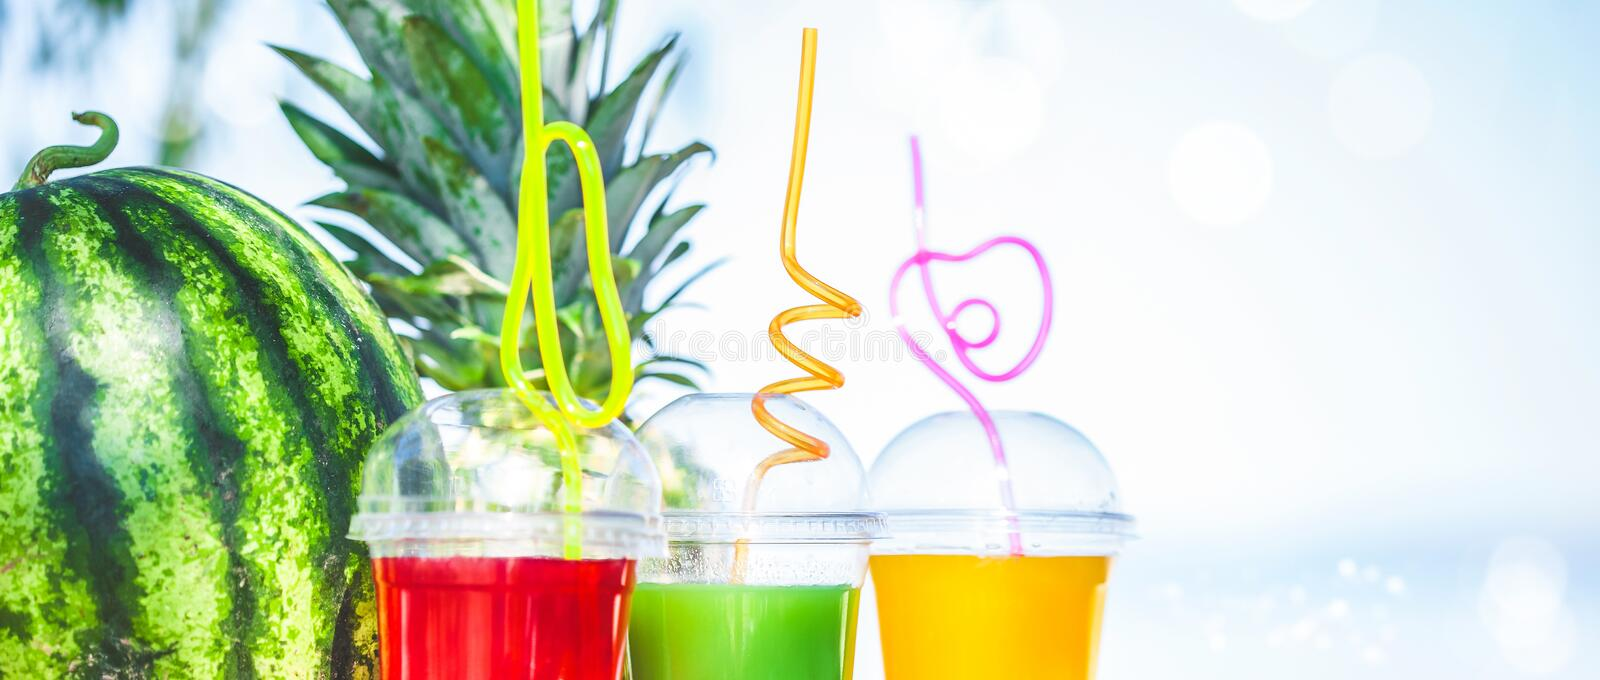 Bright Fresh healthy juices, fruit, pineapple, watermelon on the background of the sea. Summer, rest, healthy lifestyle Banner con. Bright Fresh healthy juices royalty free stock image